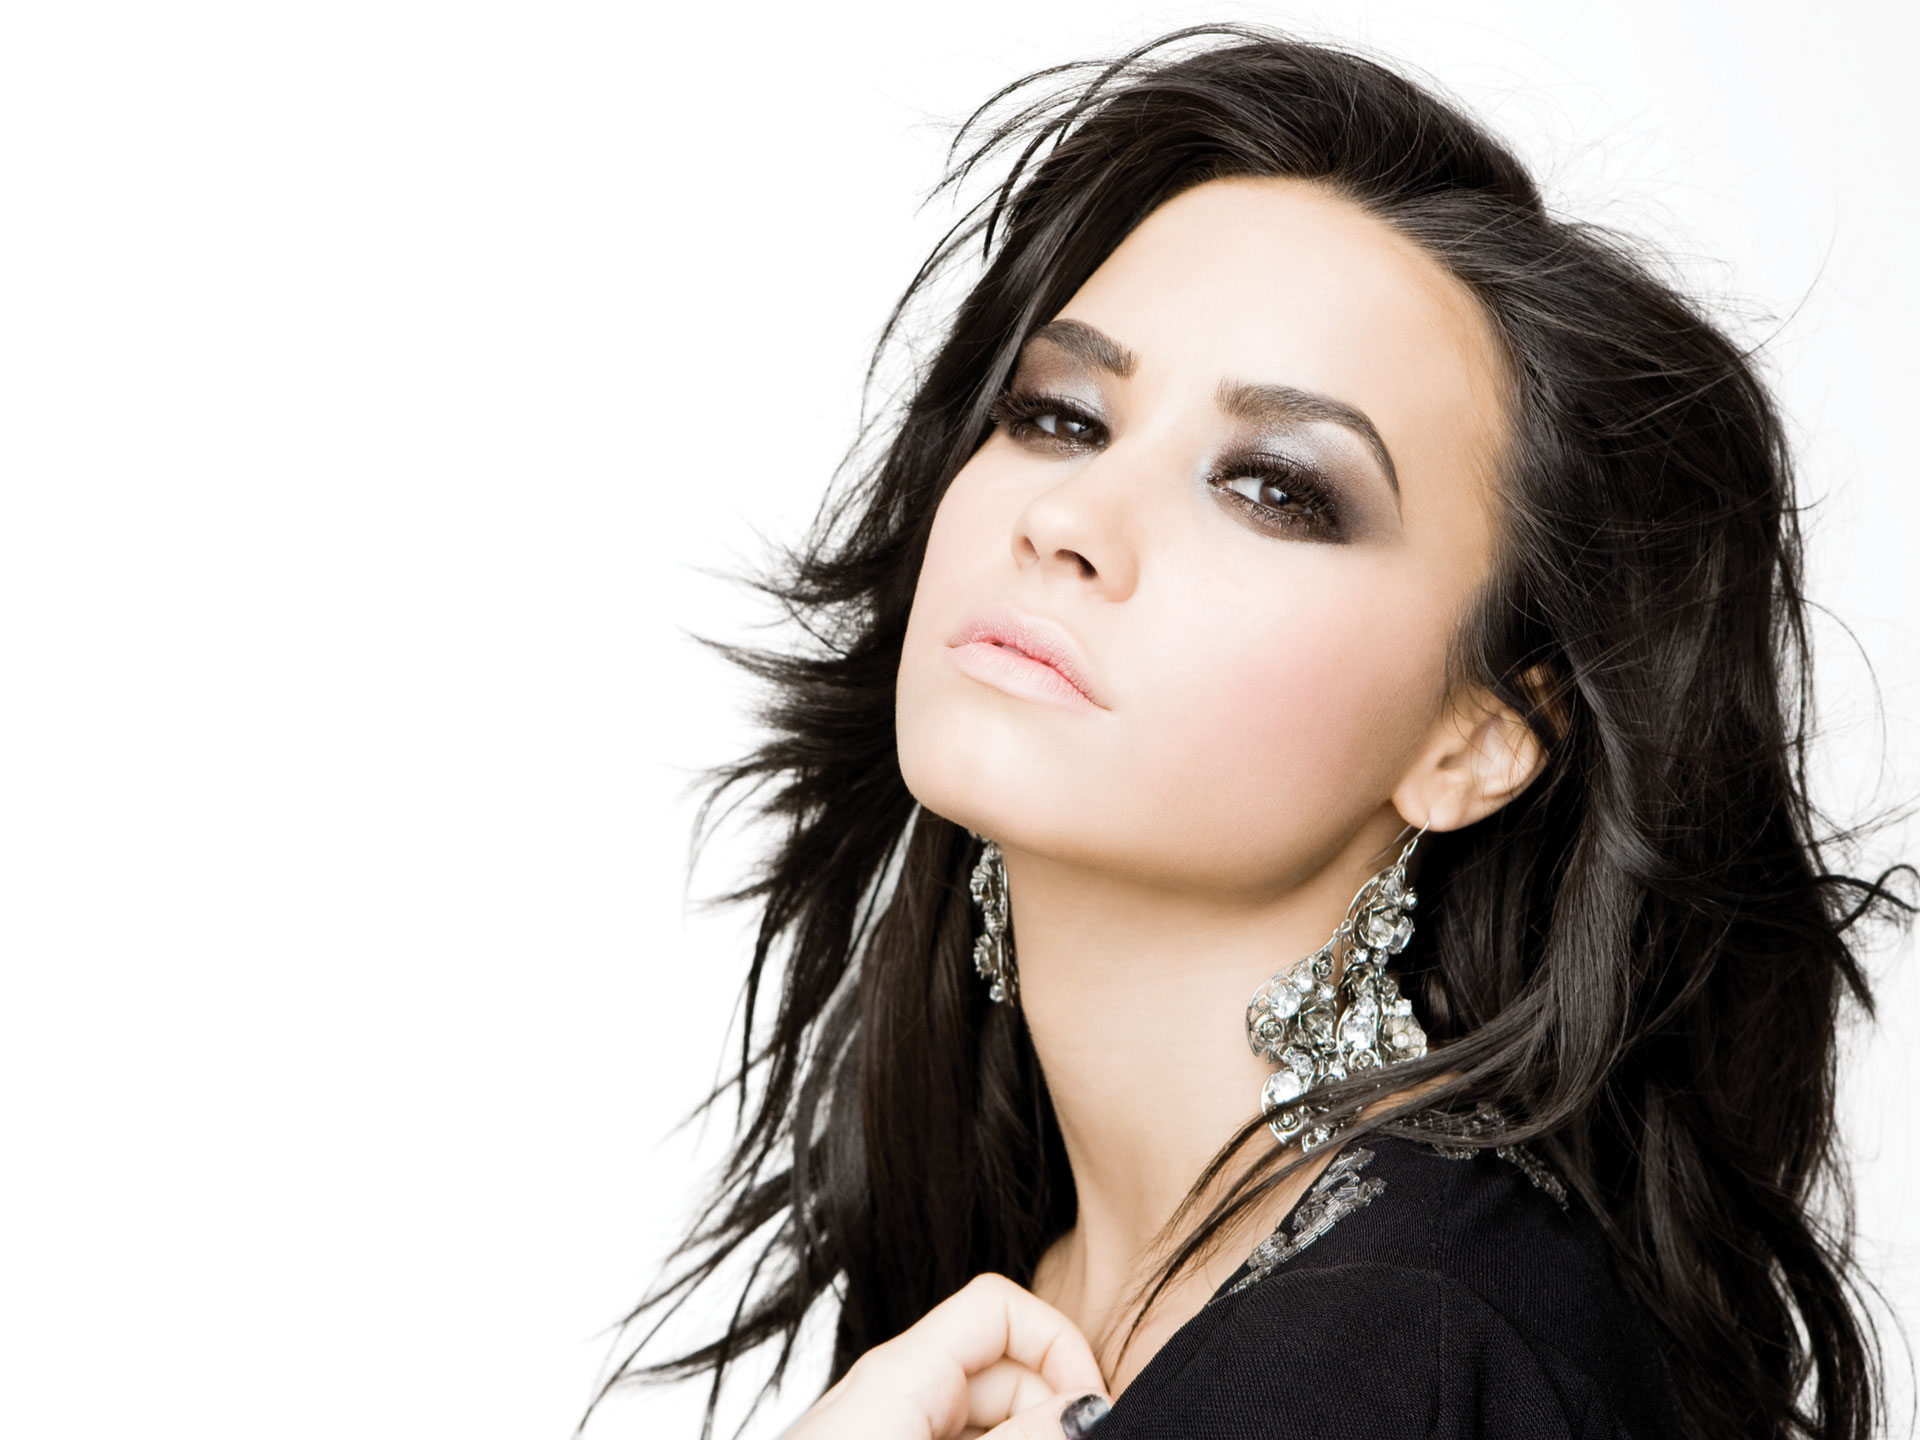 Demi Lovato 2014 wallpapers Demi Lovato pics